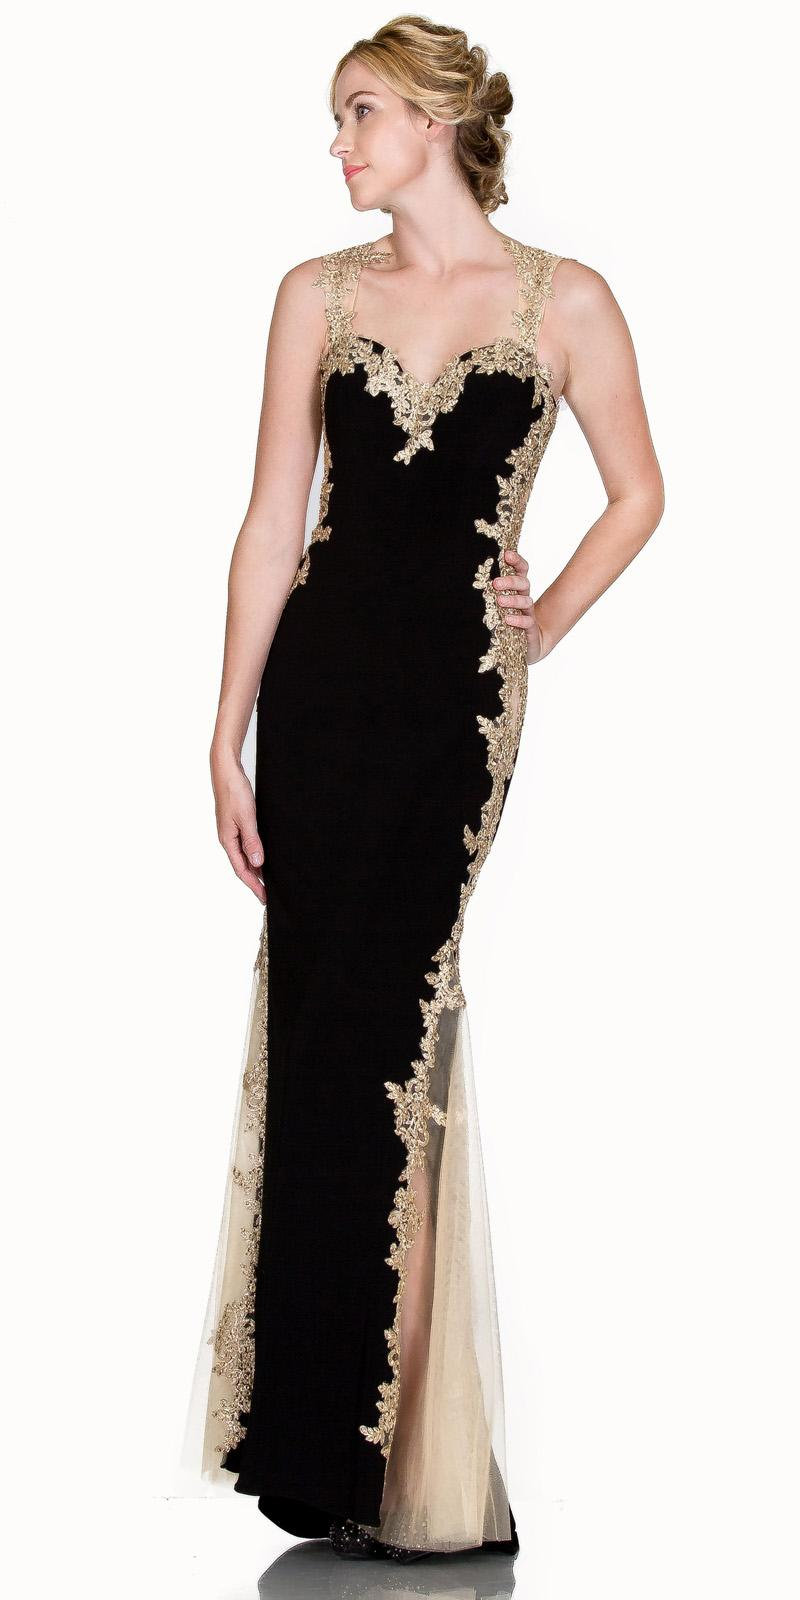 Cinderella Divine 8988 Sweetheart Neck Black Gold Fit And Flare